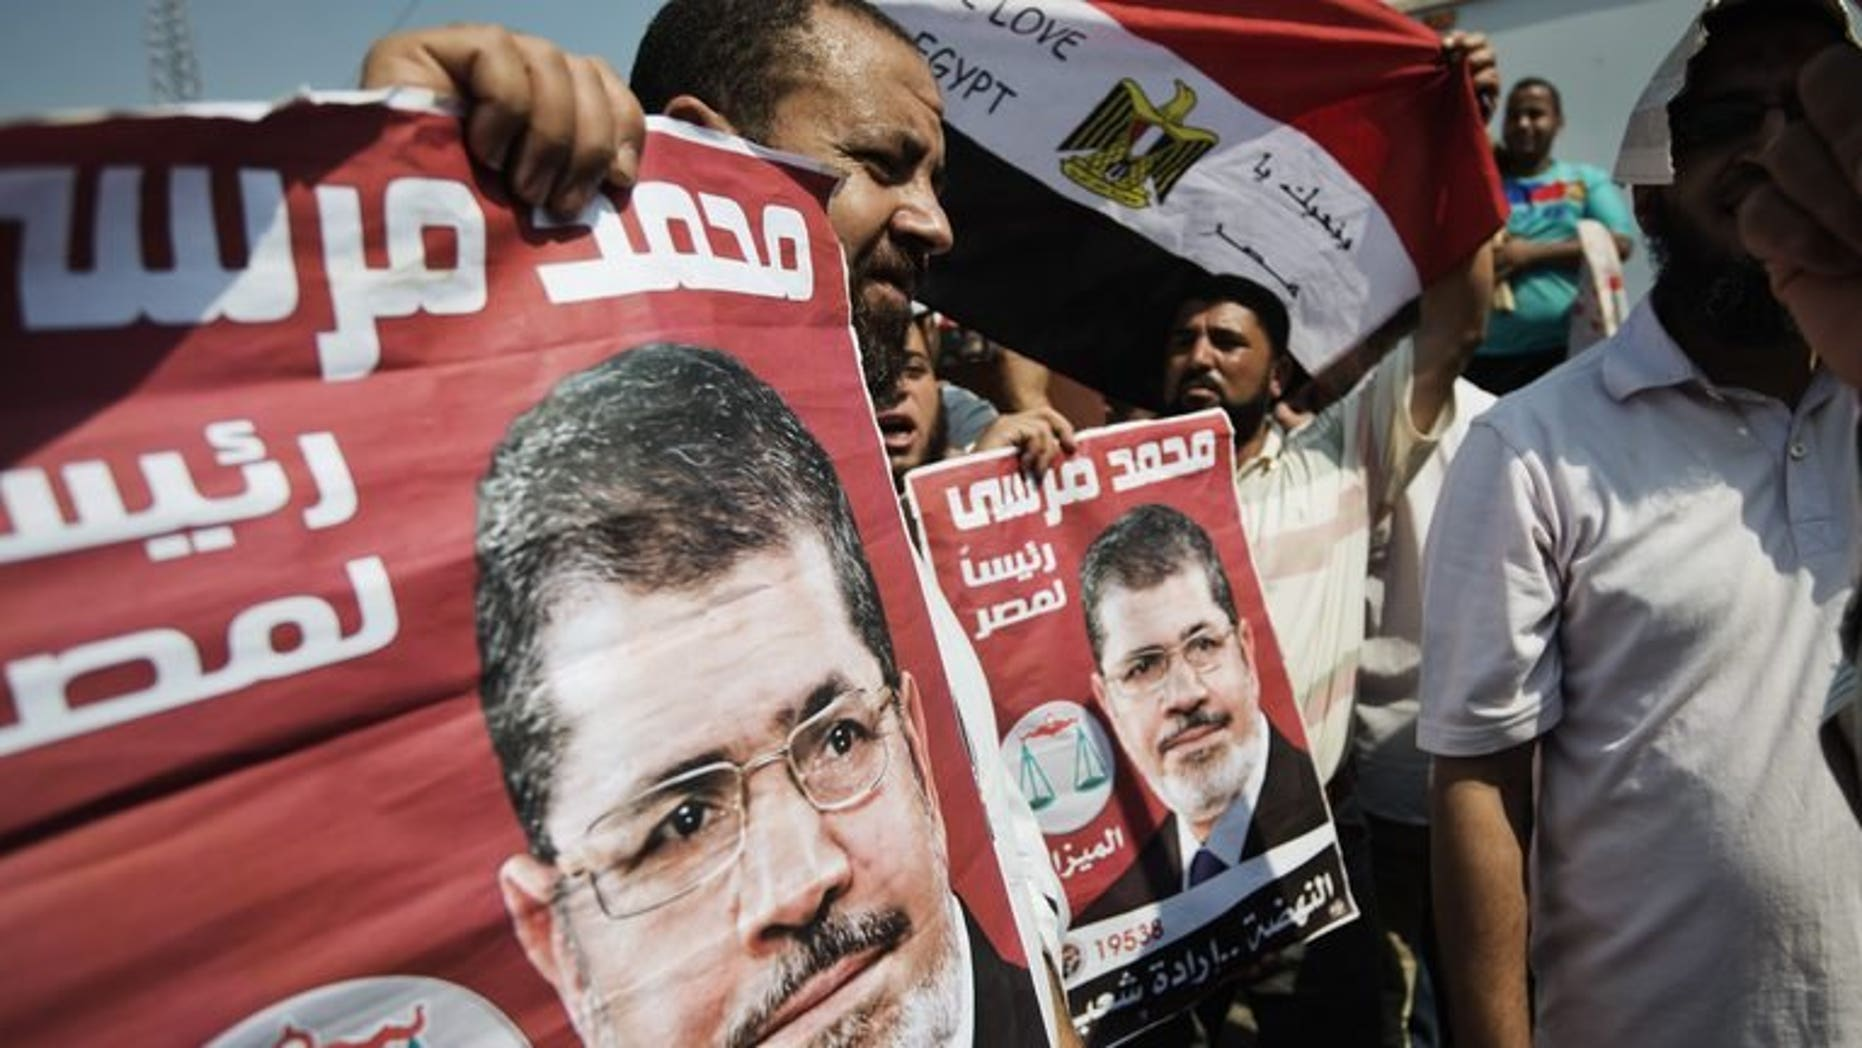 Protesters hold posters of Egyptian President Mohammed Morsi as Muslim Brotherhood members and Morsi's supporters gather outside in Cairo's eastern Nasr City district on July 2, 2013. A top Muslim Brotherhood leader urged Egyptians to stand ready to sacrifice their lives to prevent a coup.